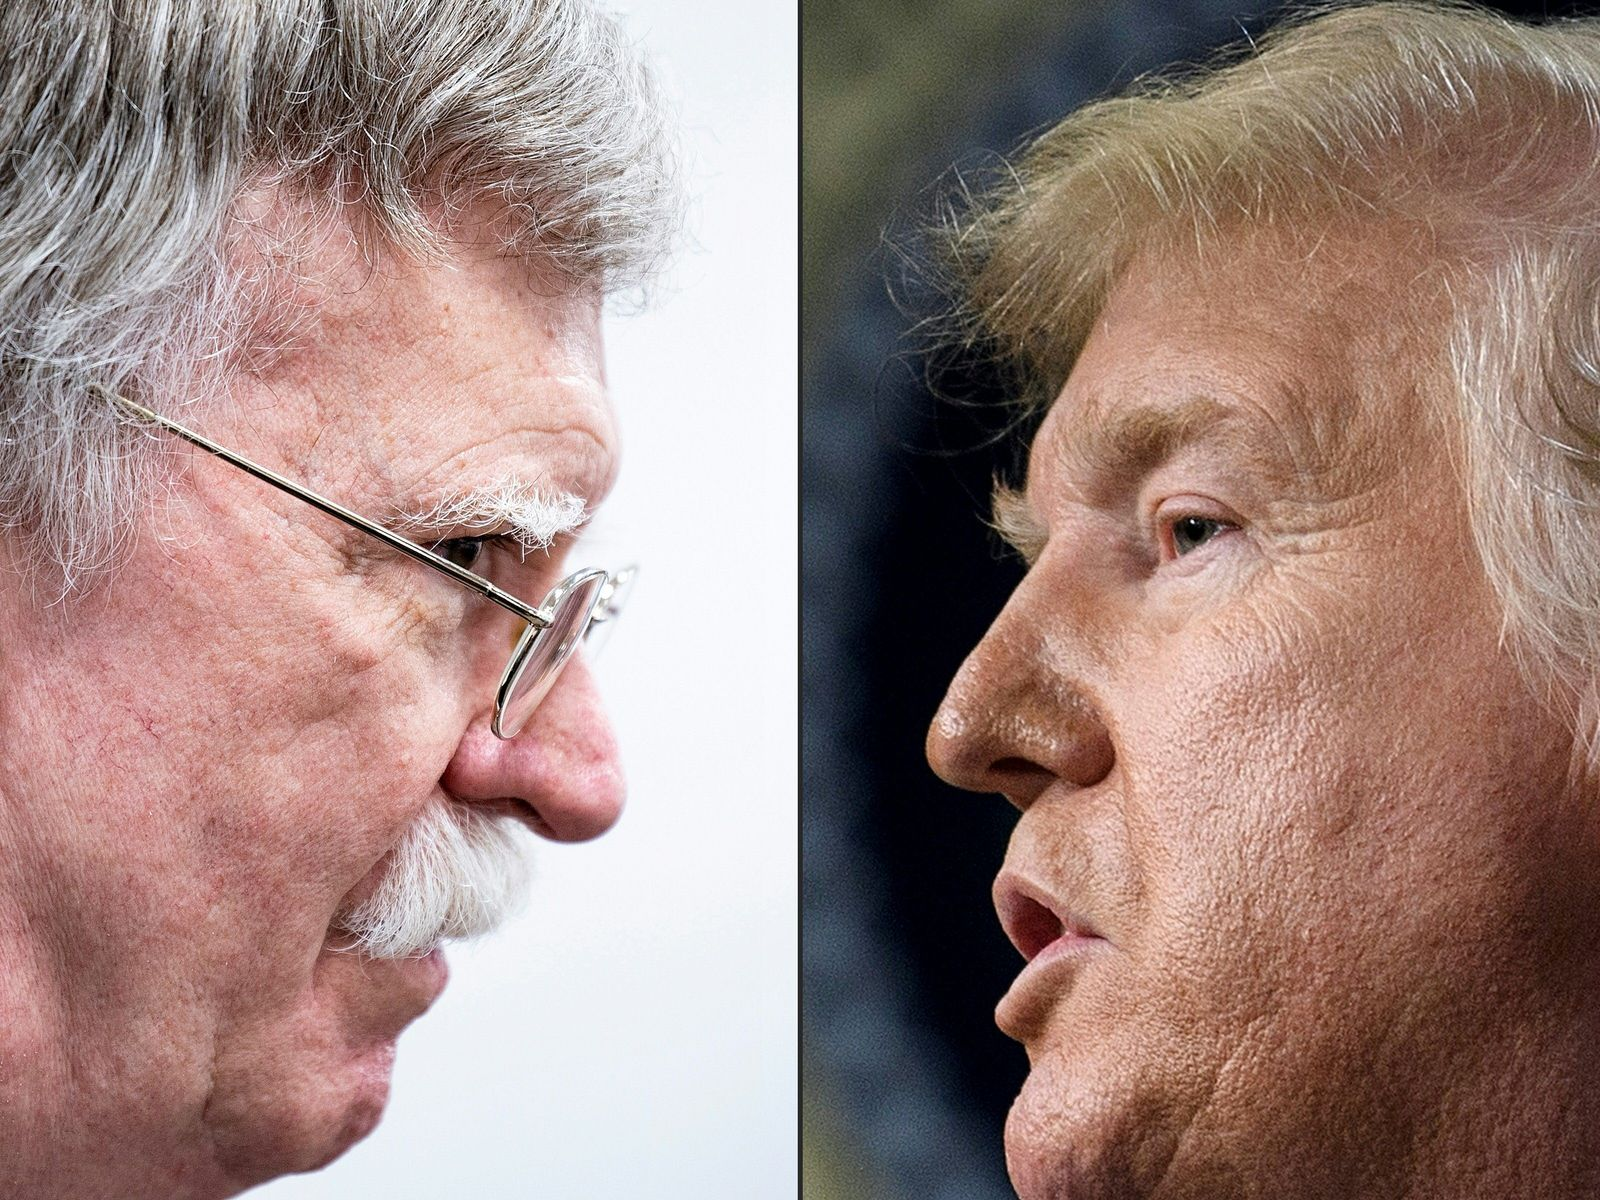 COMBO-FILES-US-POLITICS-IMPEACHMENT-BOLTON-DIPLOMACY-TRUMP-PEW